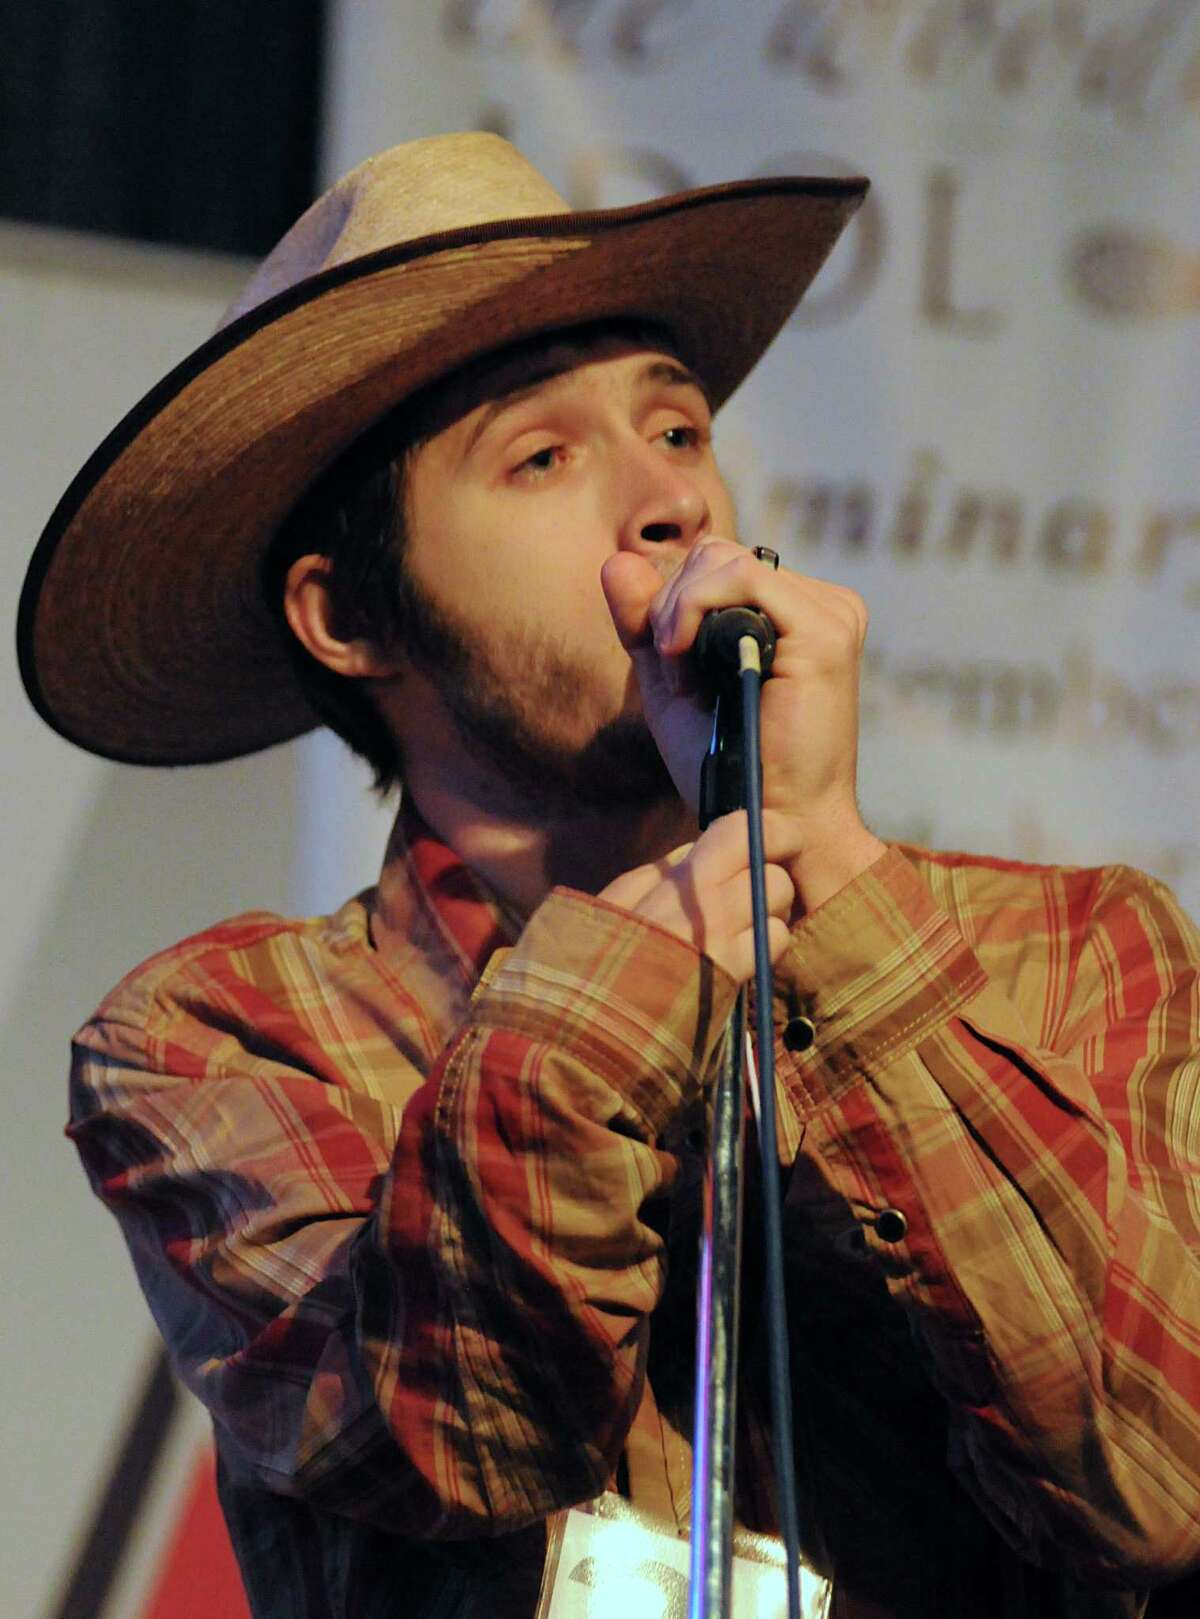 Zachary Jones sings during The Woodlands Idol Finals at Papa's Ice House, 314 Pruitt Road in Spring. The ten finalists performed two songs during the finals. Photograph by David Hopper